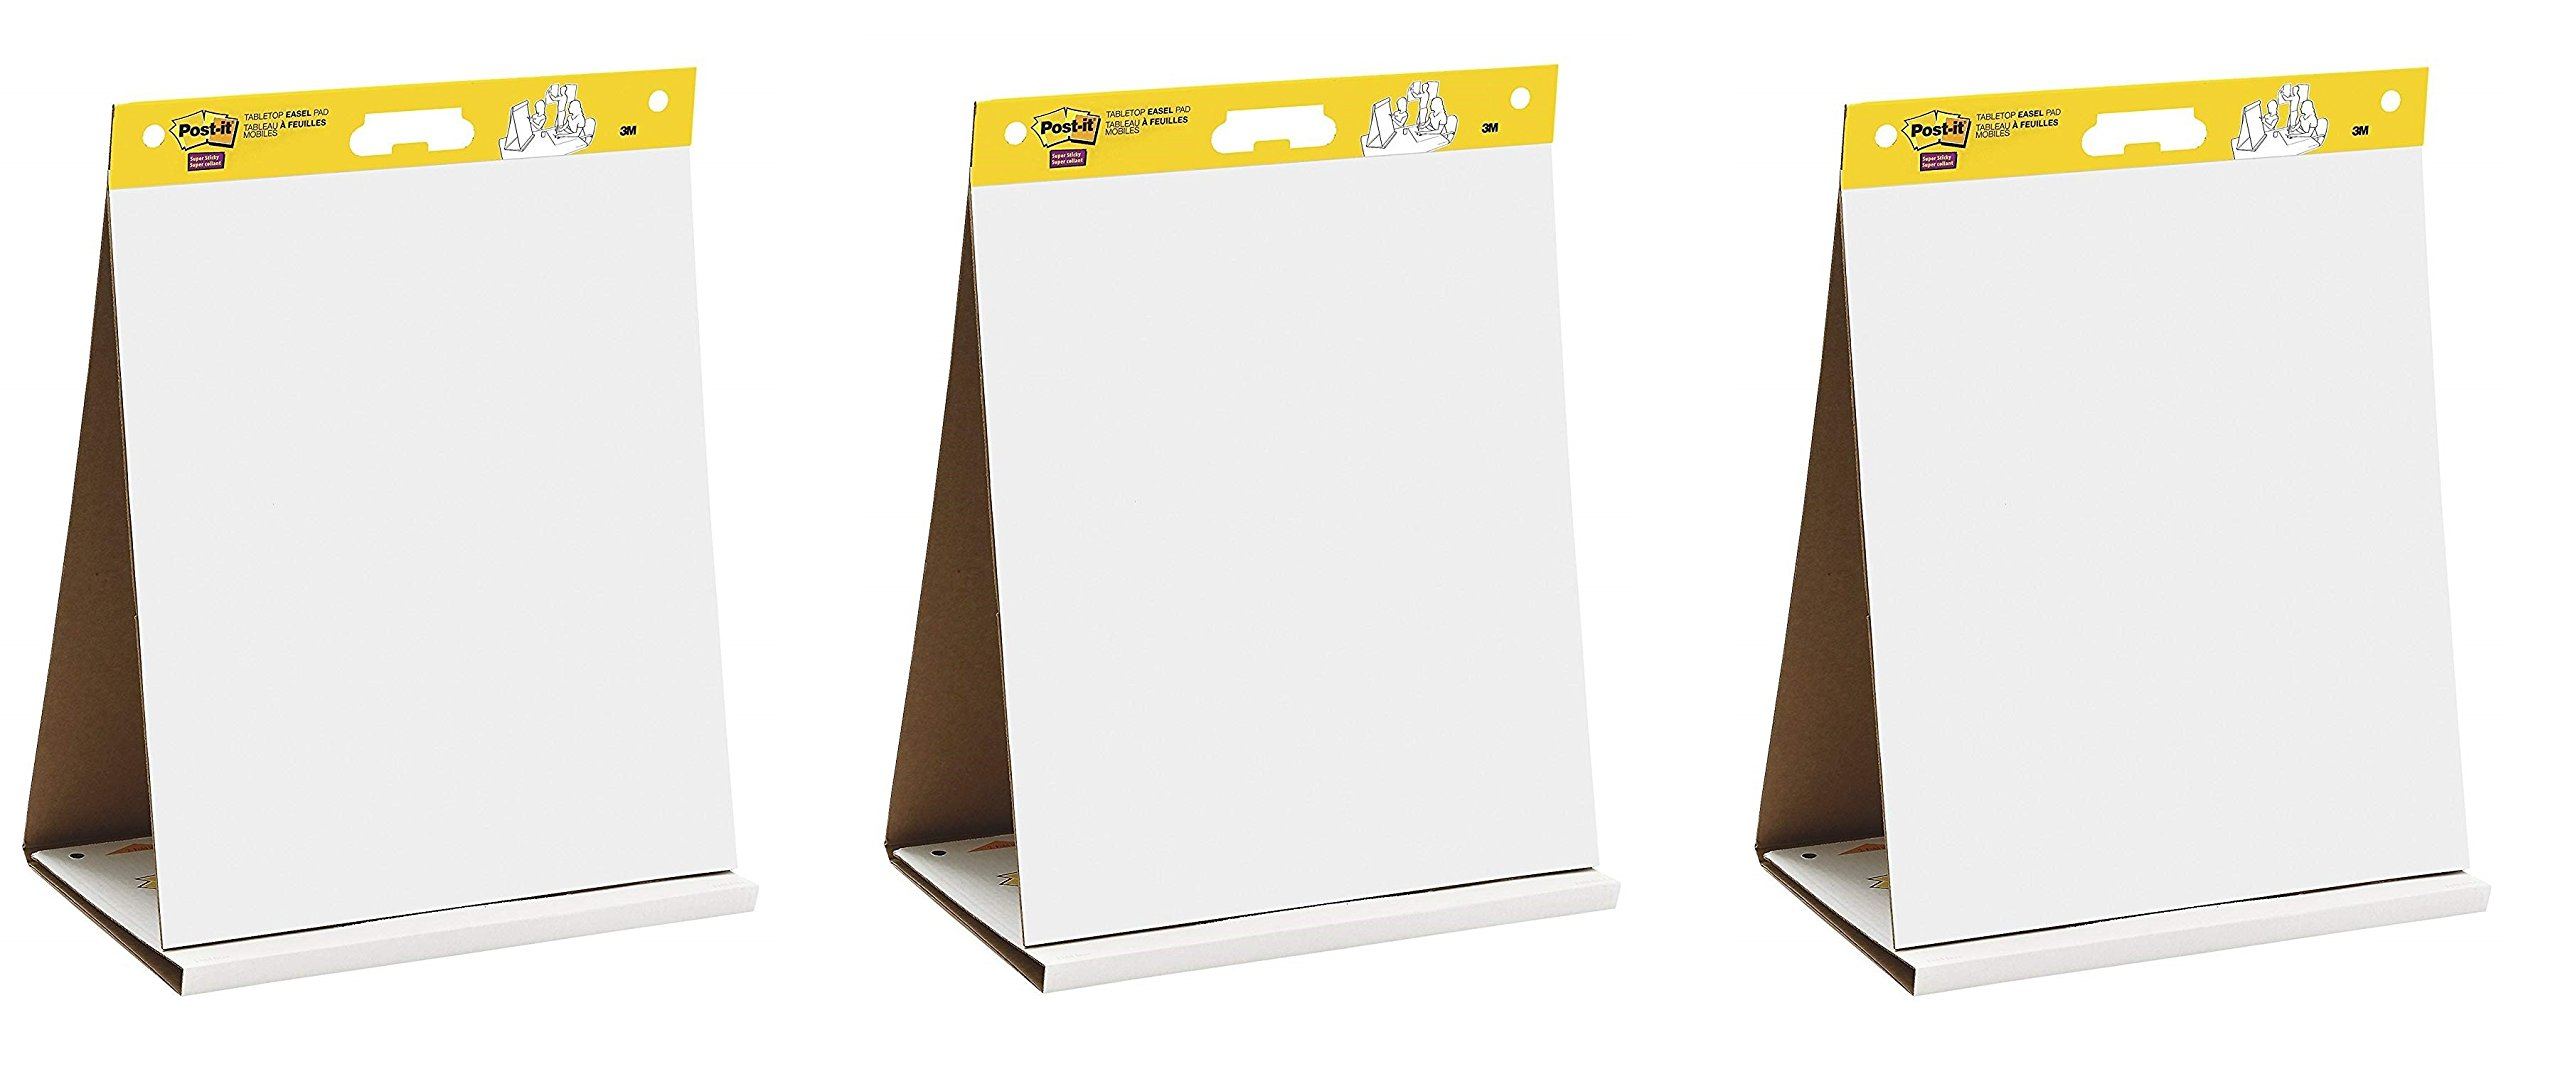 Post-it Super Sticky Tabletop Easel Pad, 20 x 23 inches, 20 Sheets/Pad, 1 Pad (563 DE), Portable White Premium Self Stick Flip Chart Paper, Dry Erase Panel, Built-in Easel Stand (Pack of 3)